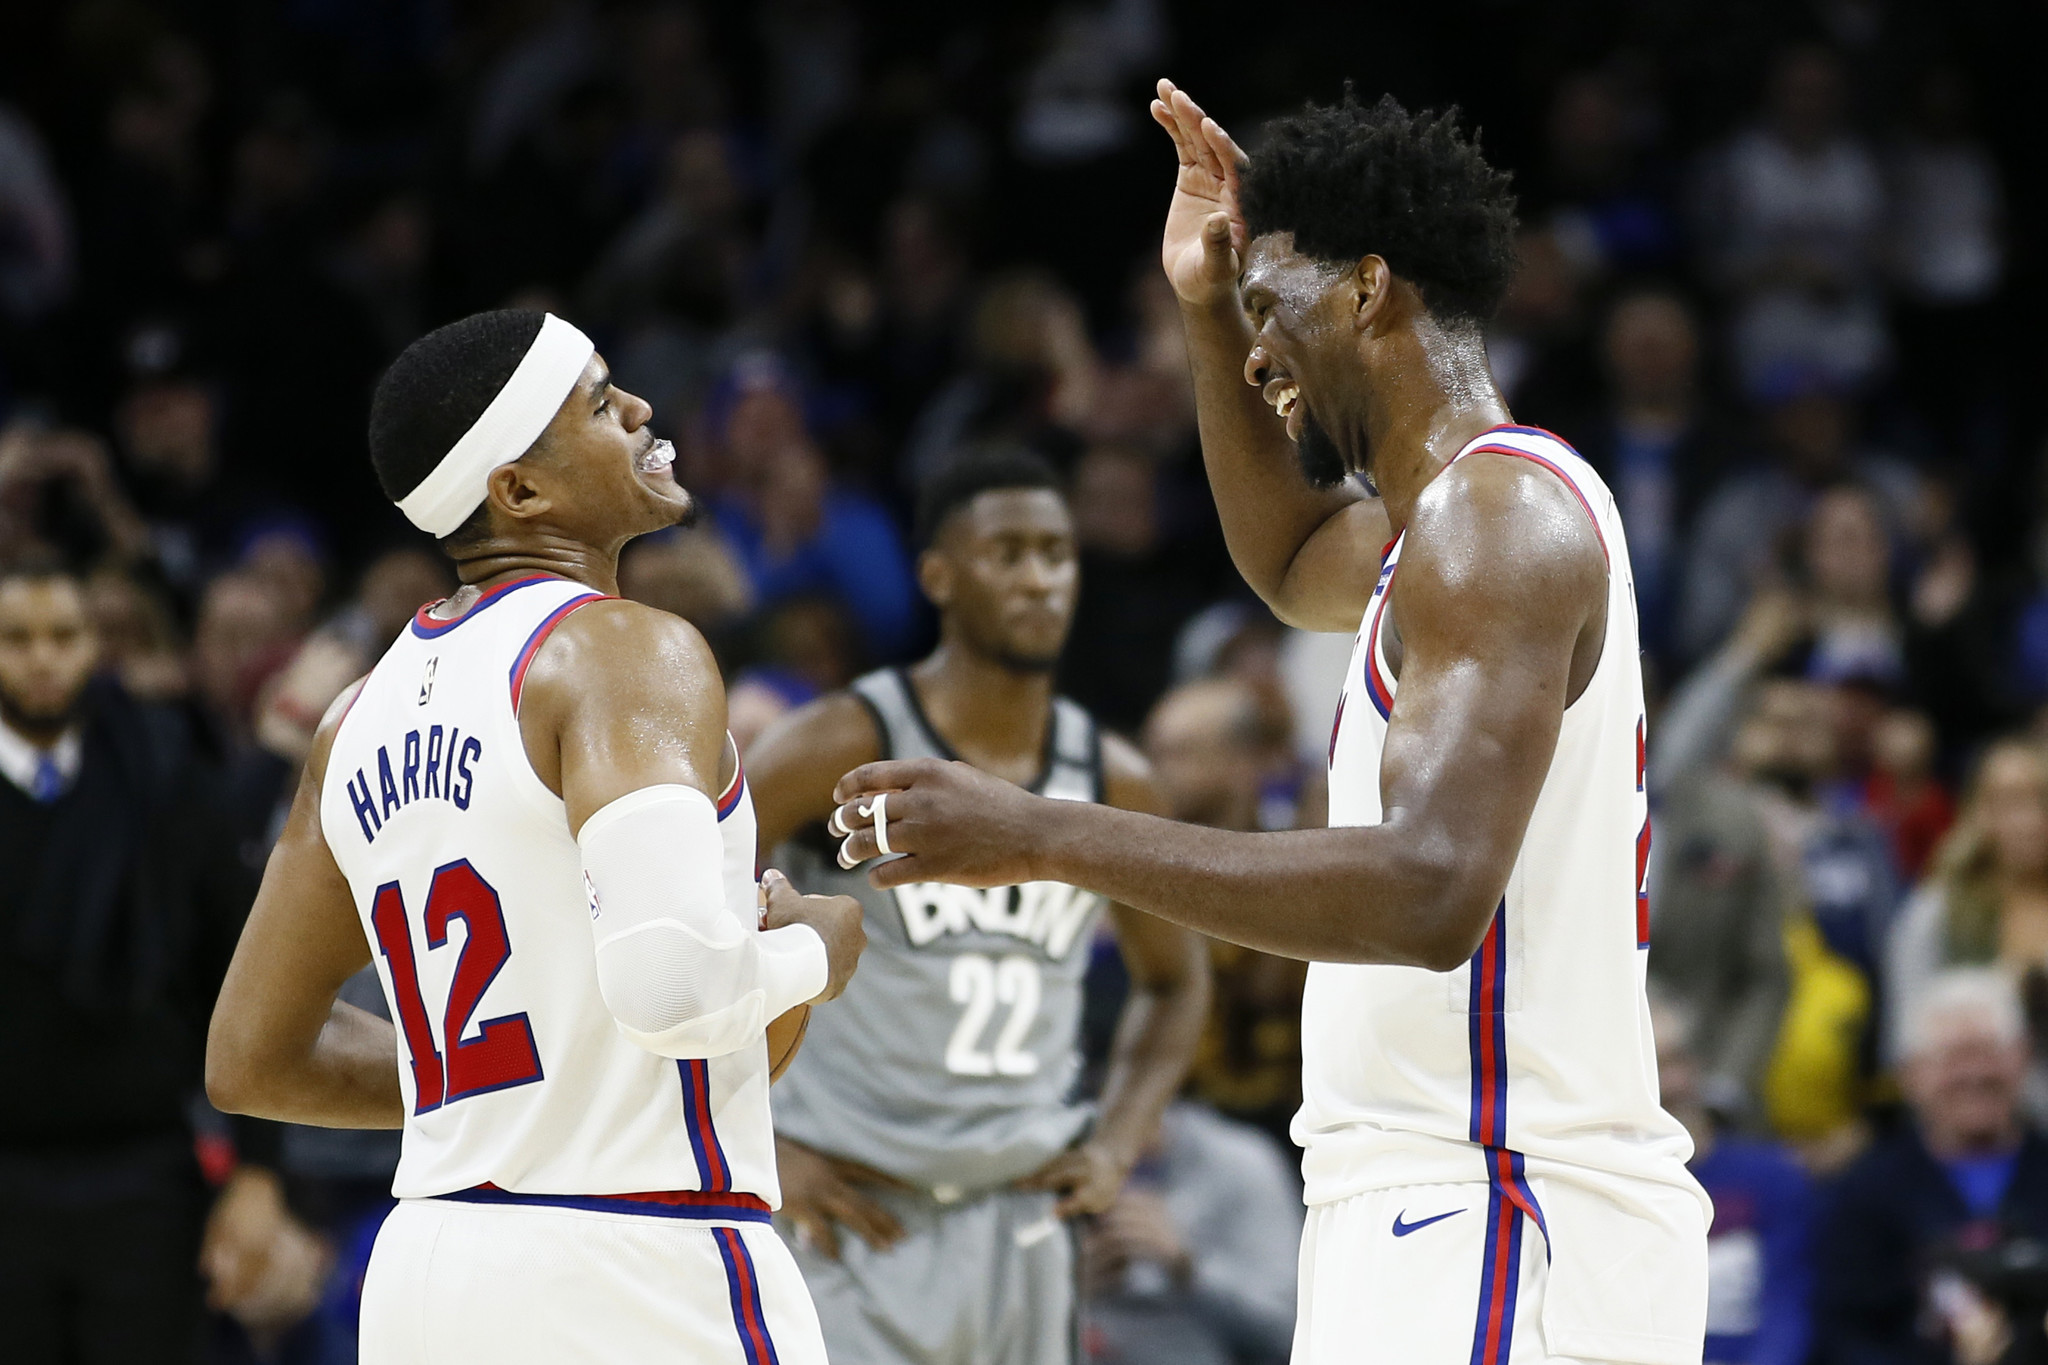 After losing Kyrie Irving for season, Nets blow big lead in overtime loss to Sixers